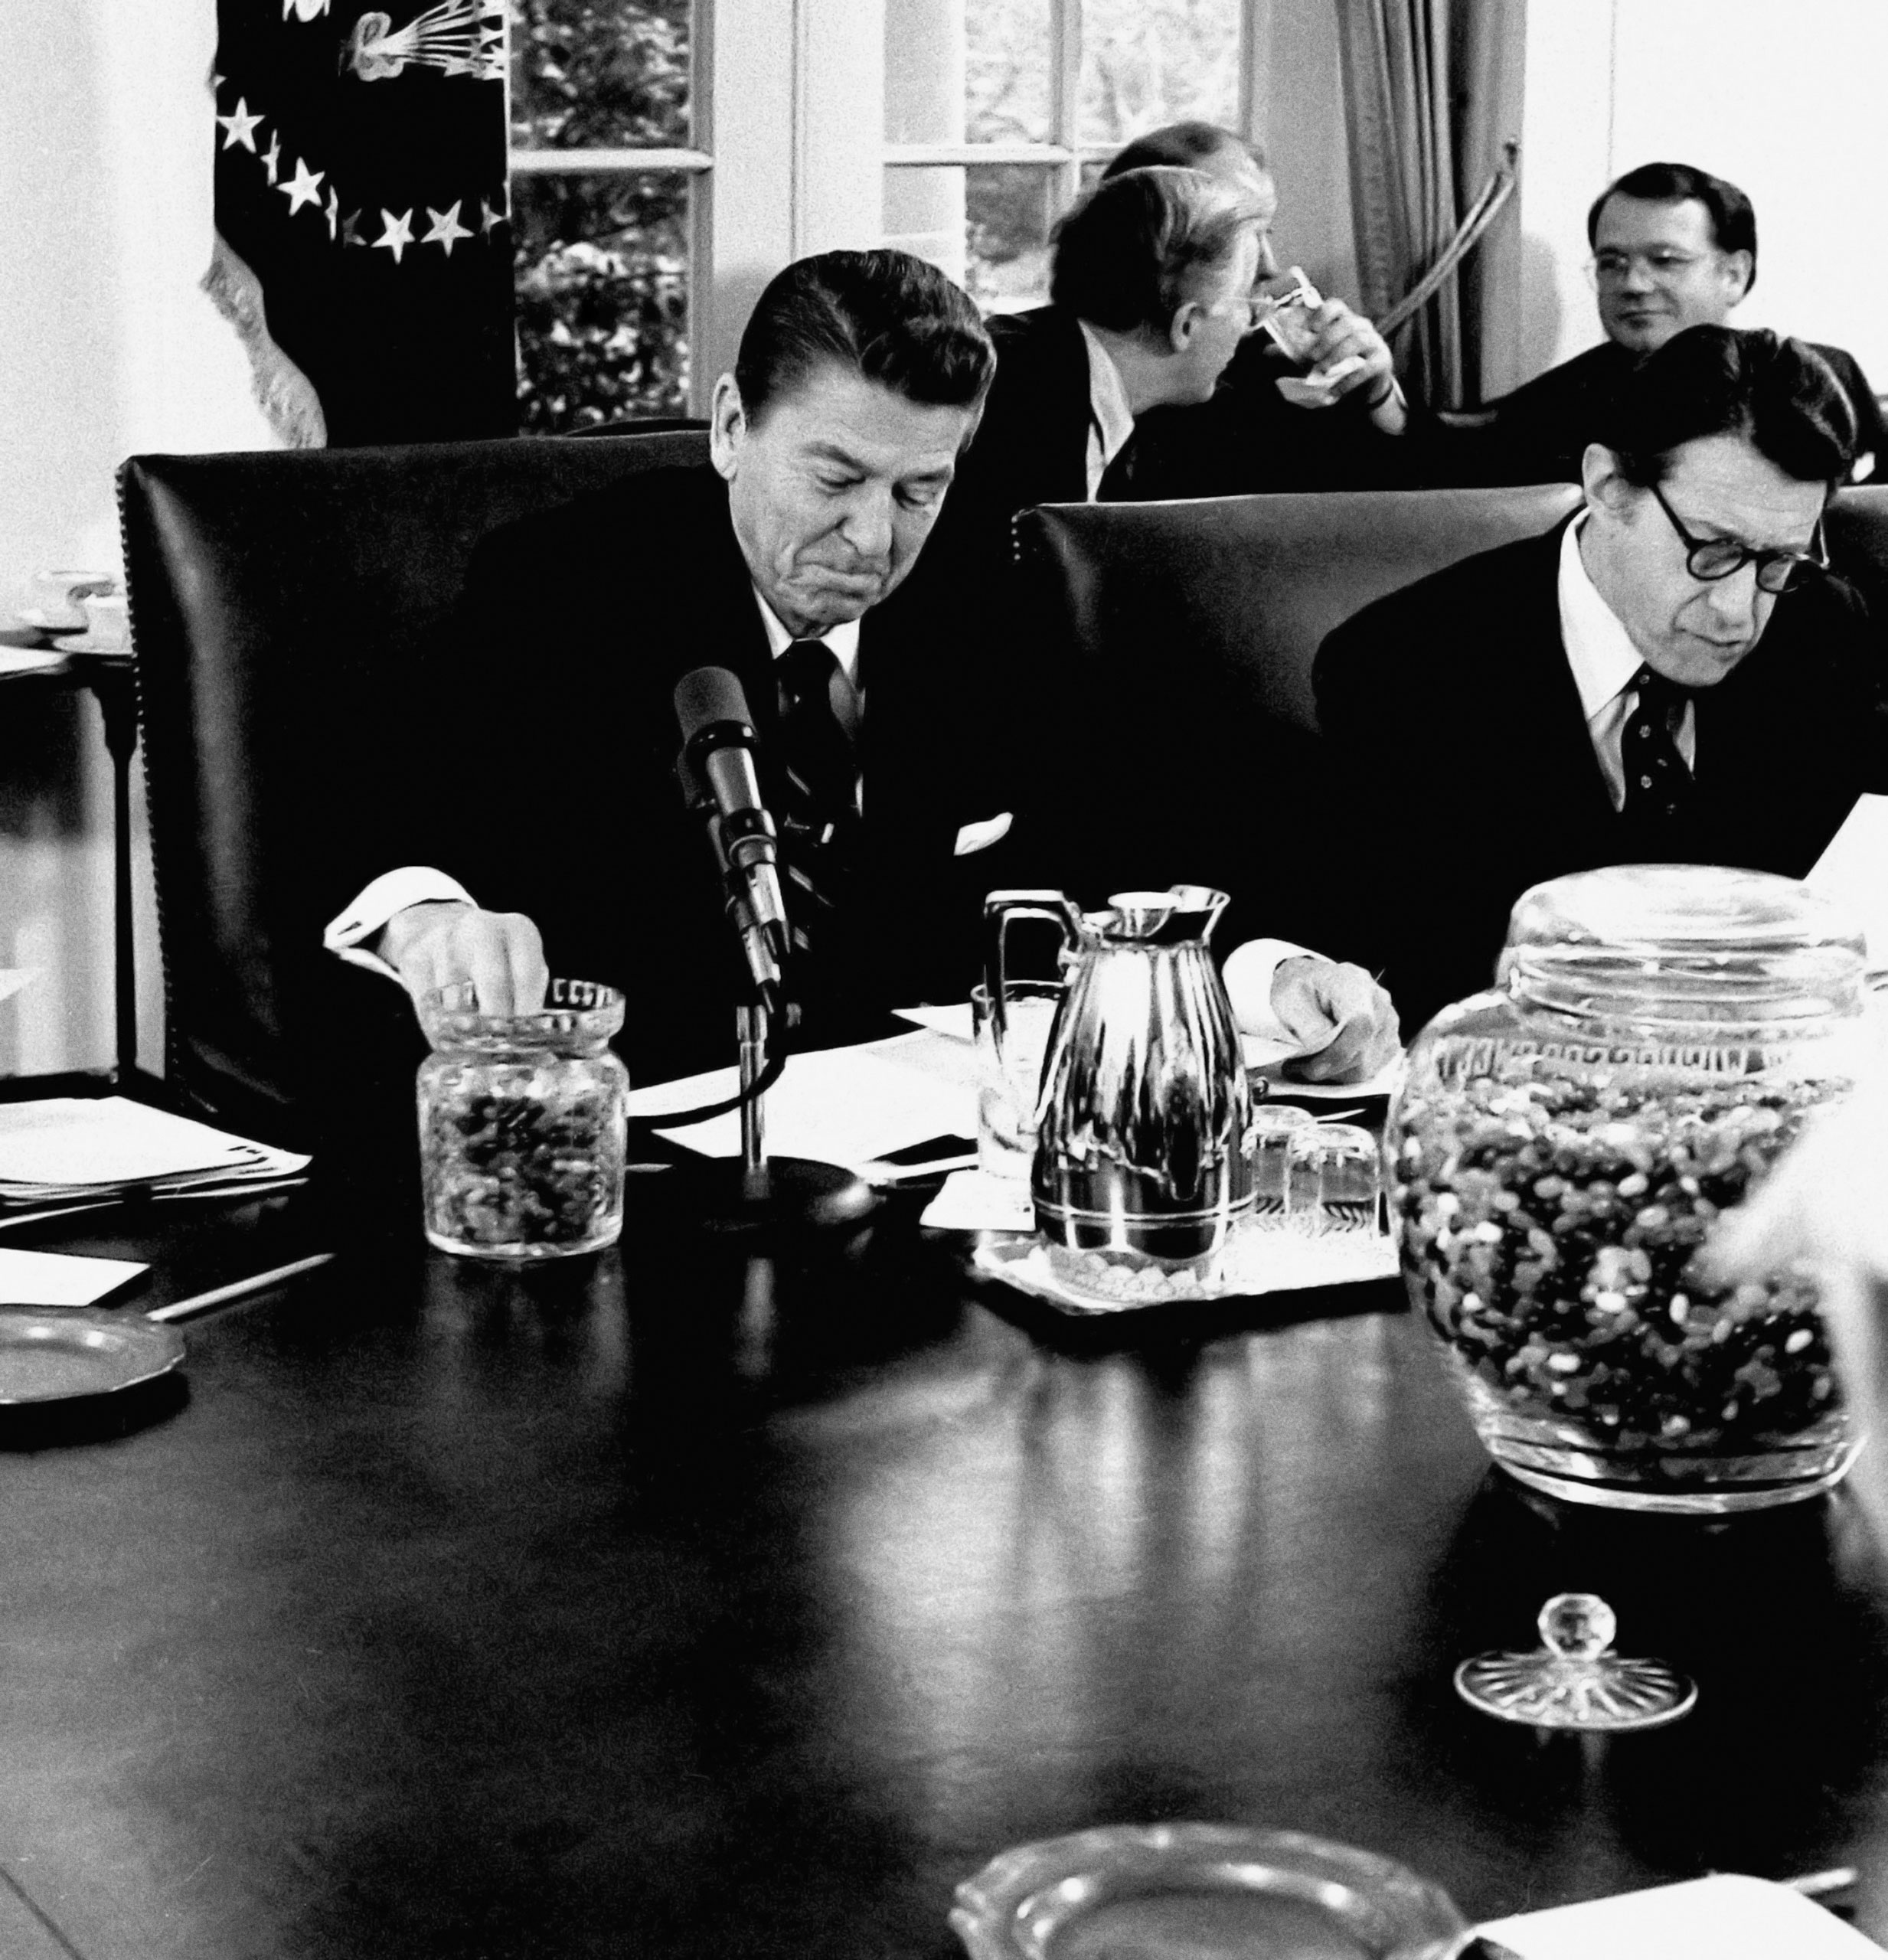 Ronald Reagan eating jelly beans during a meeting.